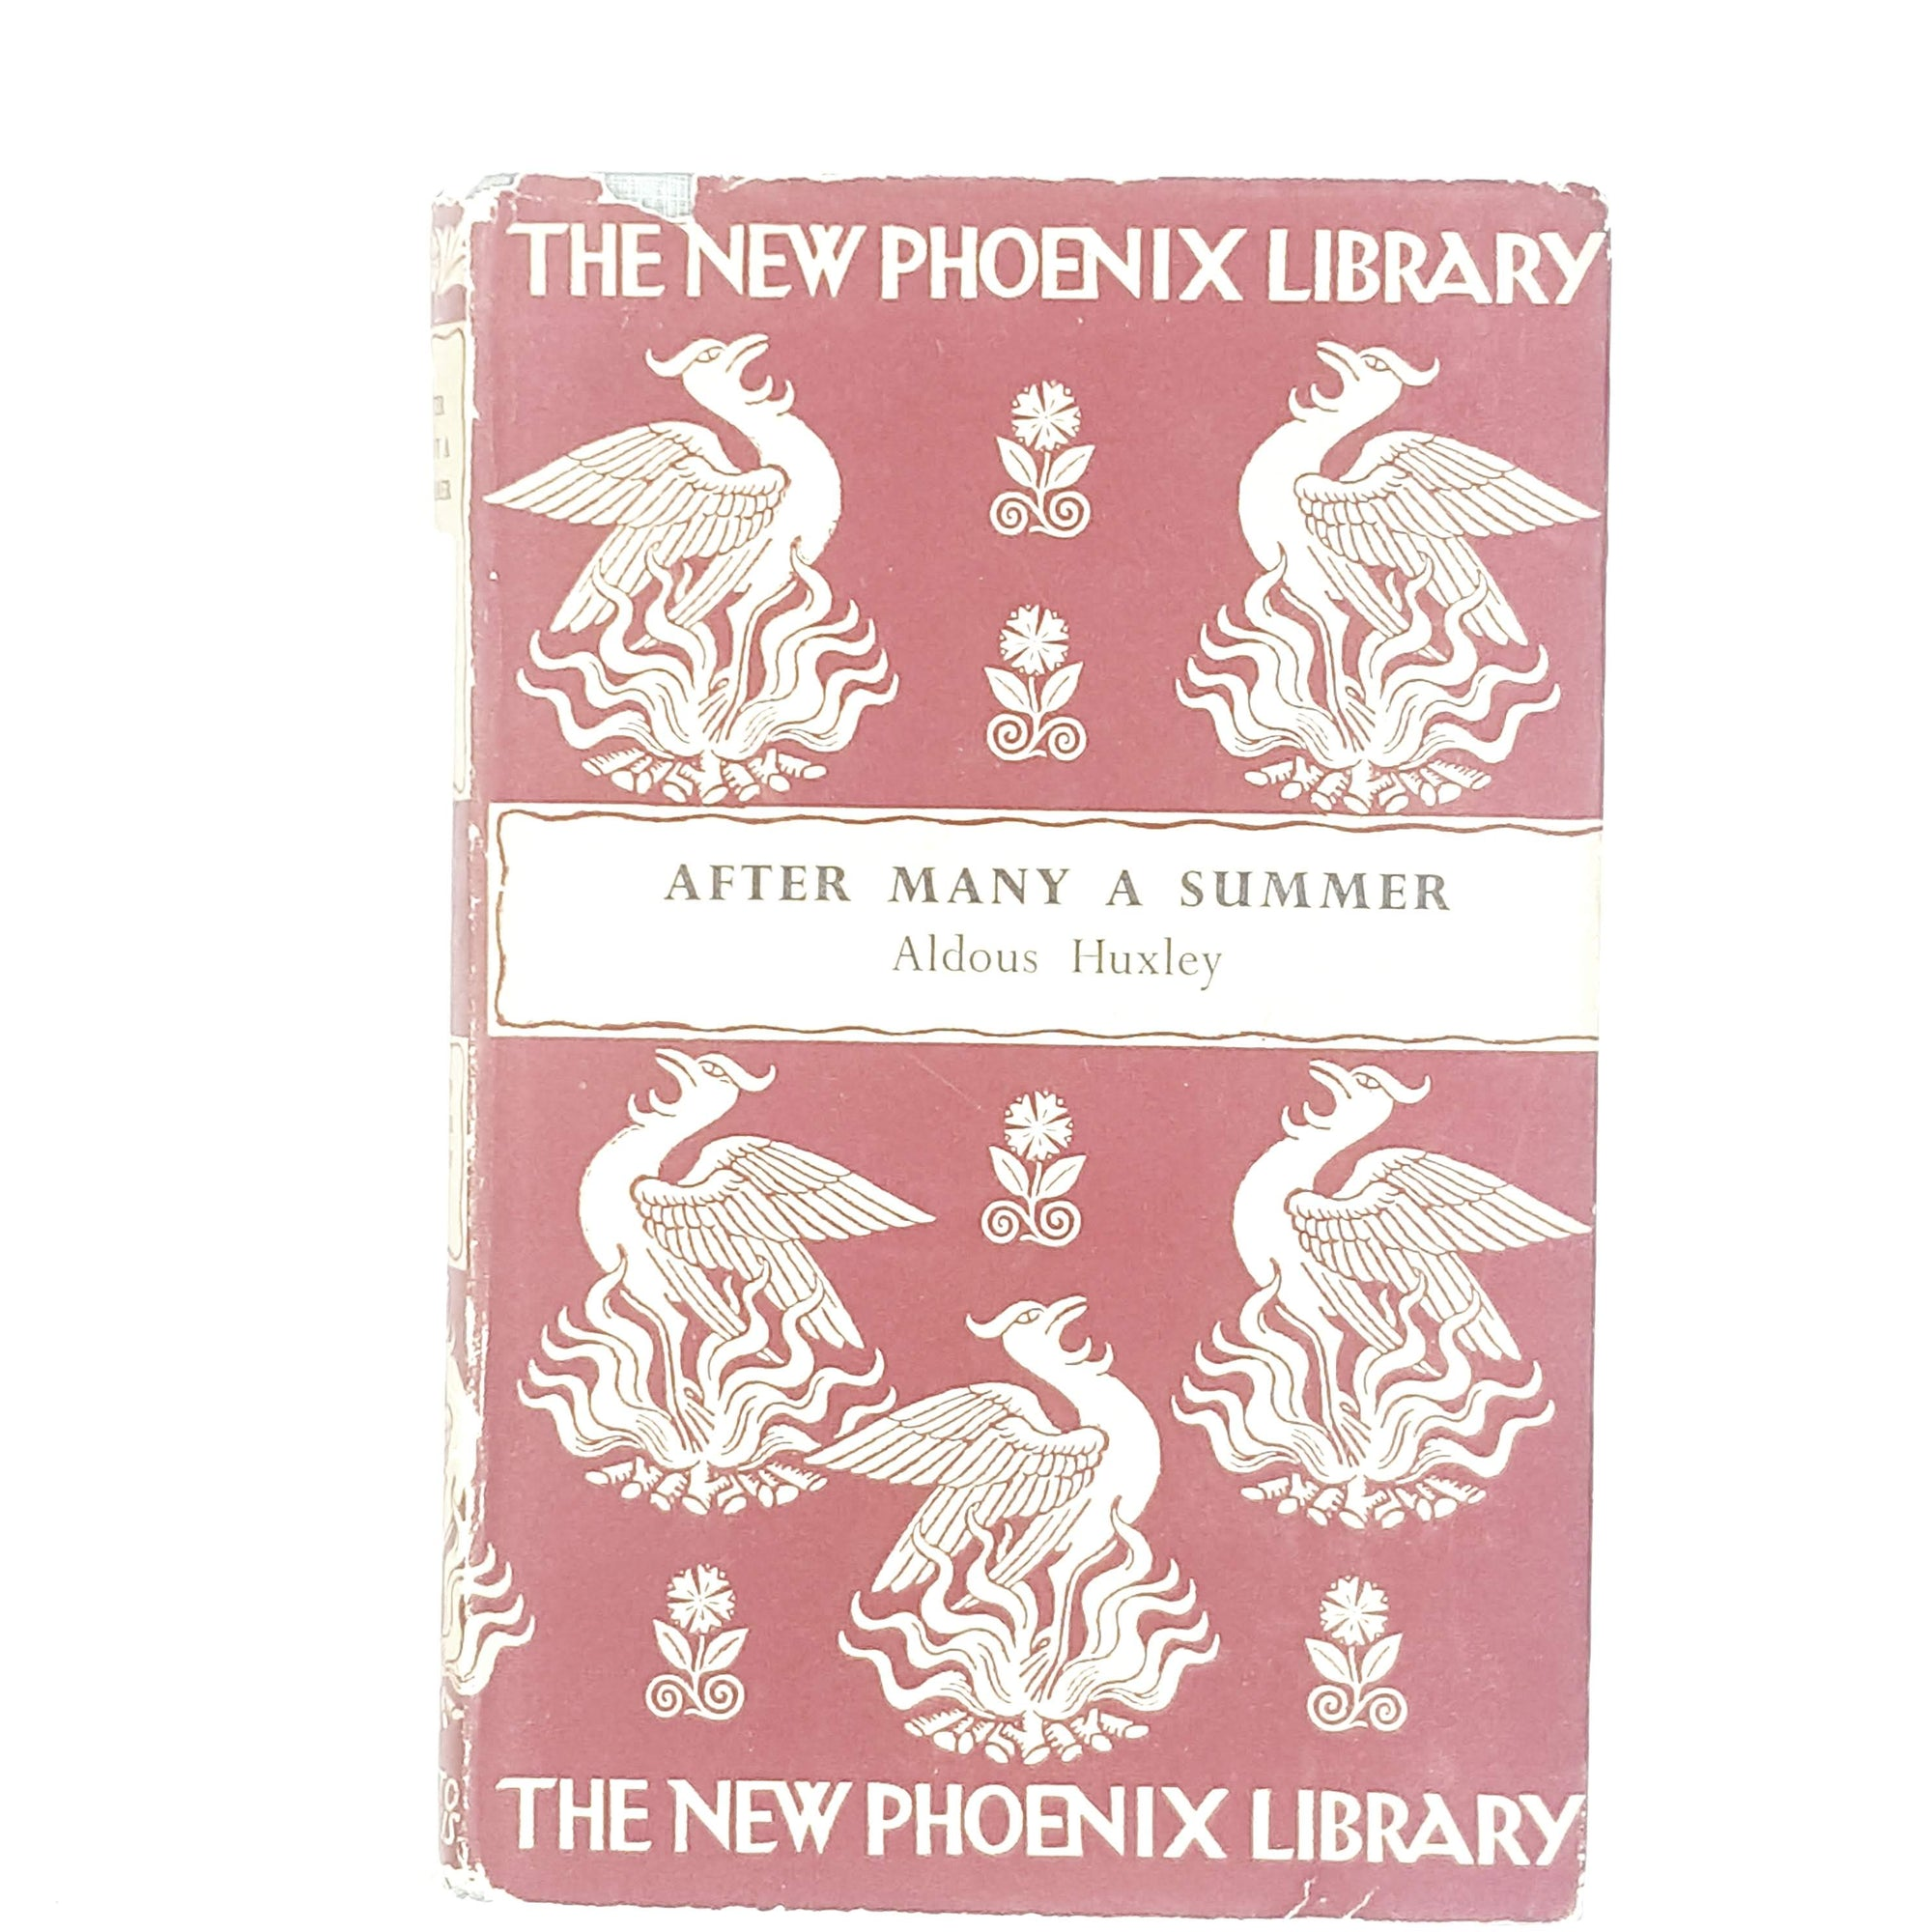 First Edition Aldous Huxley's After Many a Summer 1950